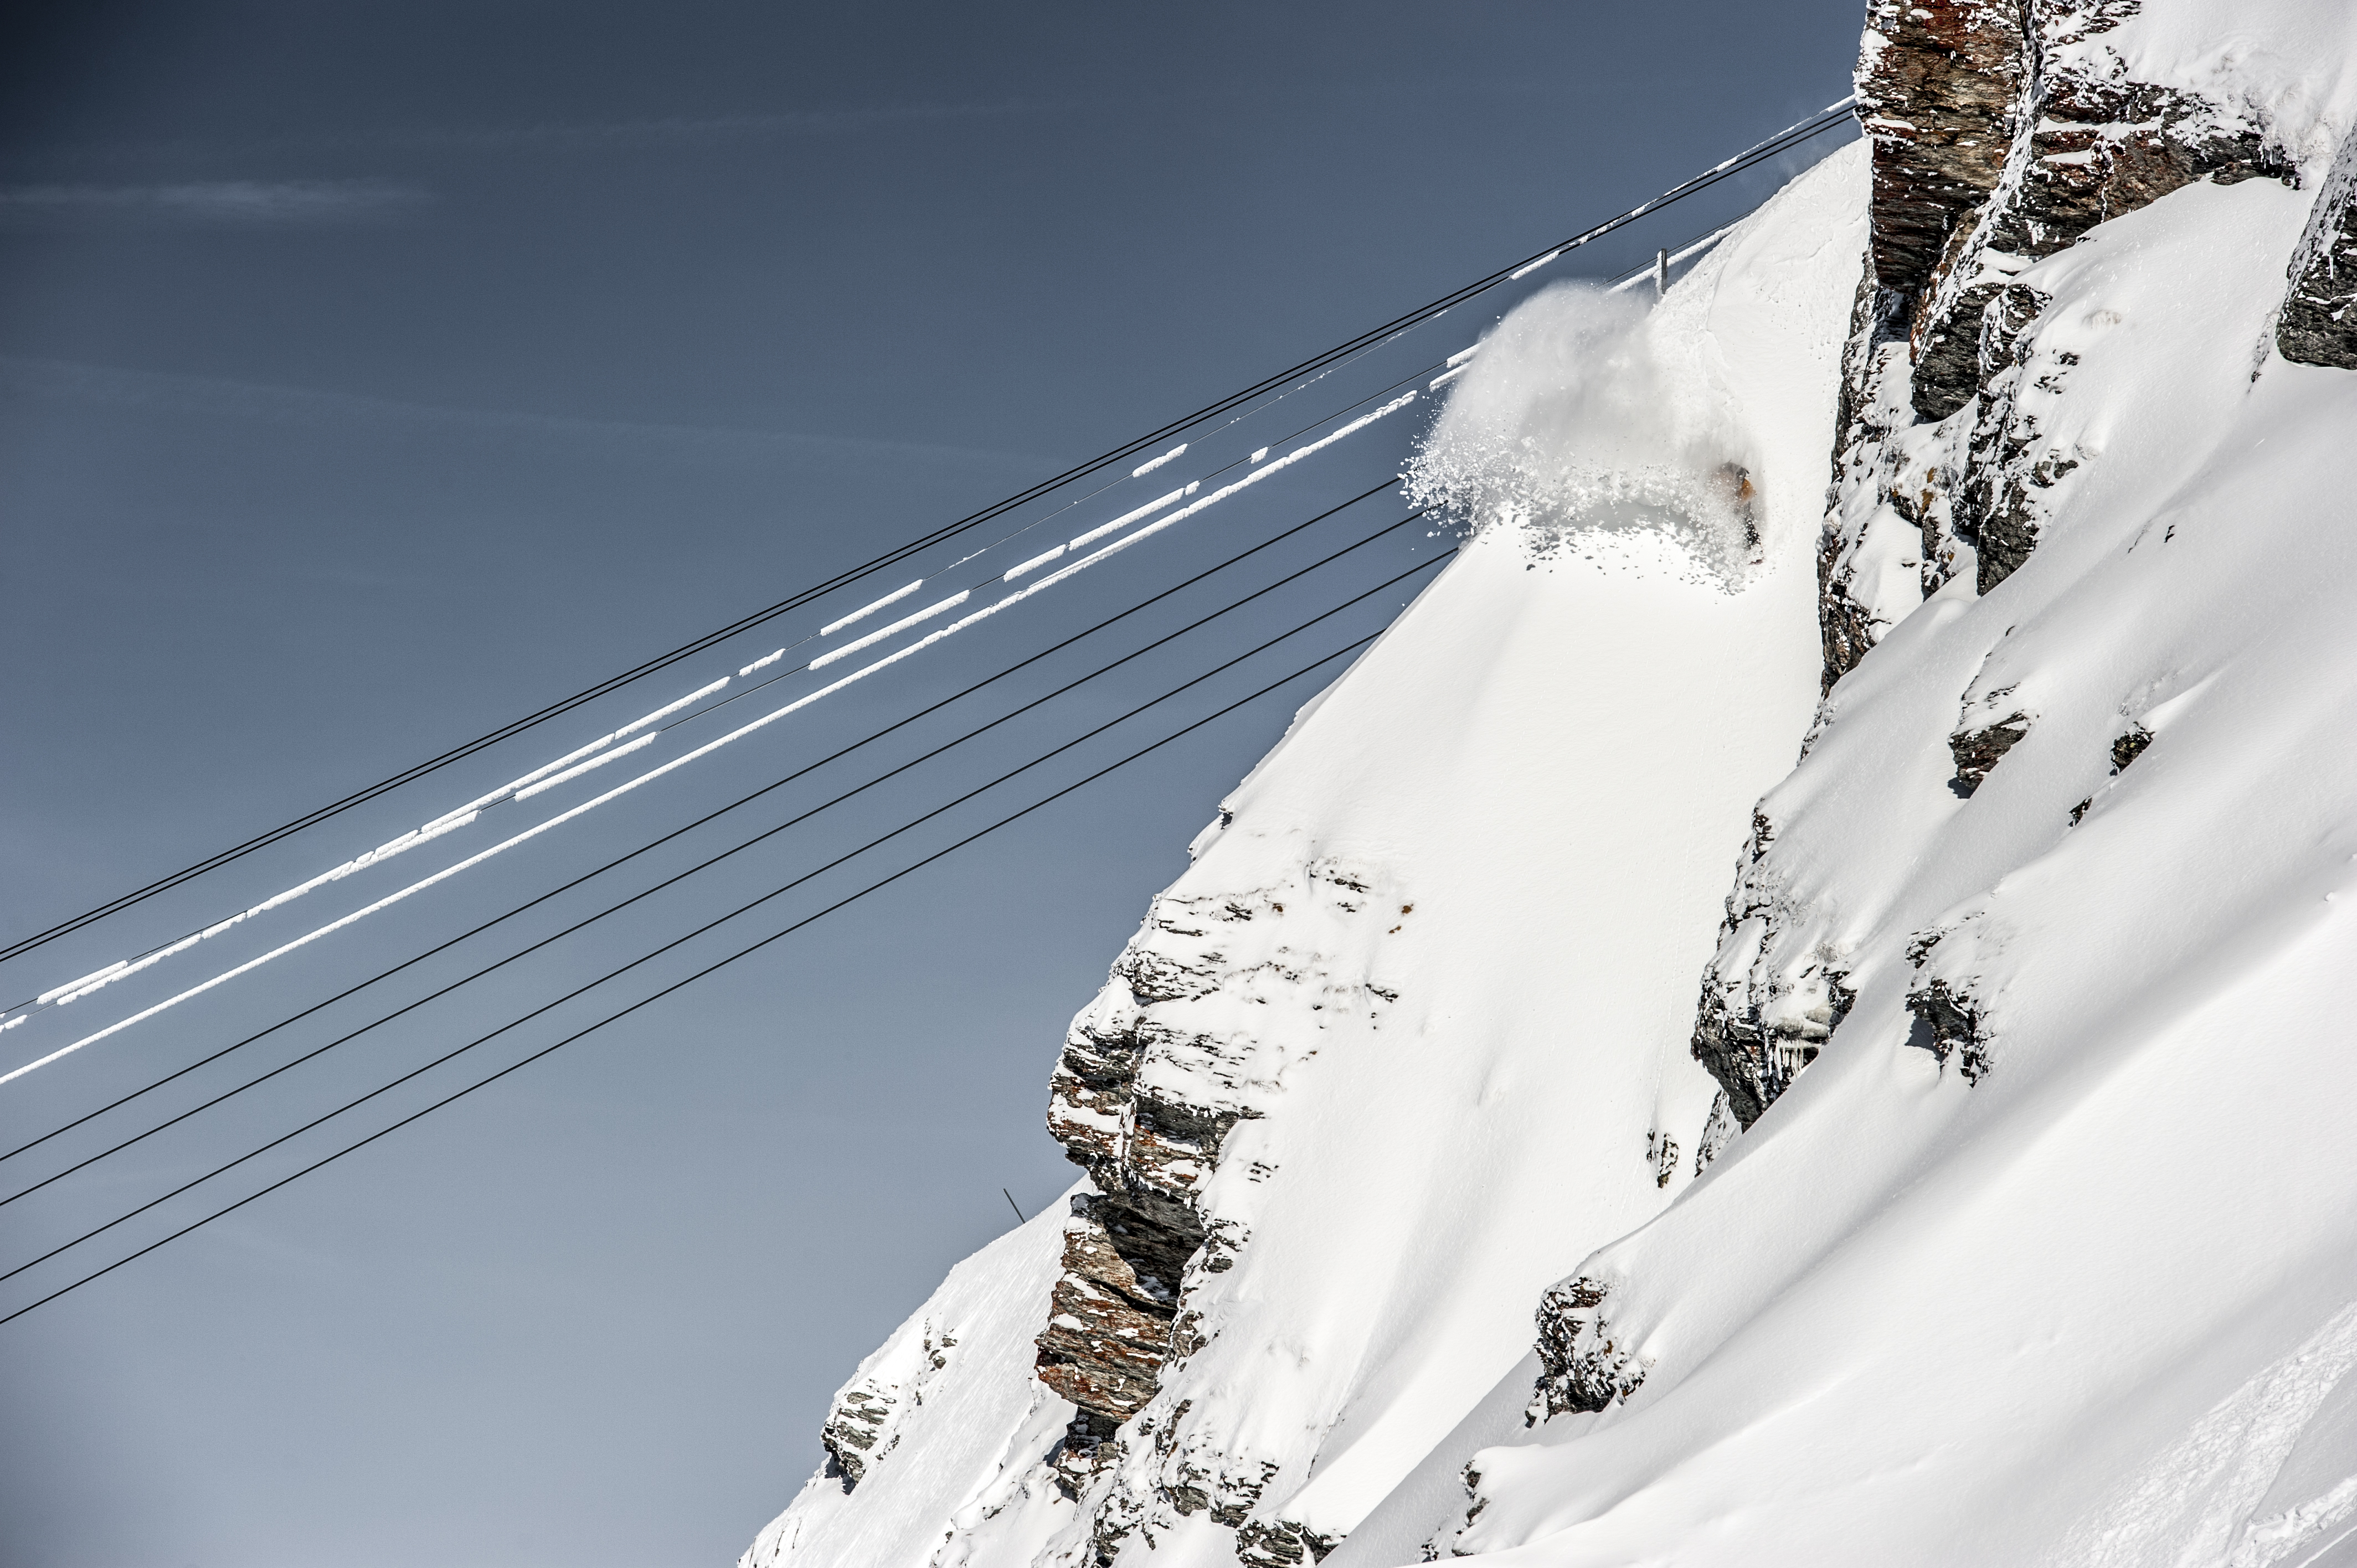 Extreme Snowboarding in Verbier with Freeride World Tour rider Andre Sommer